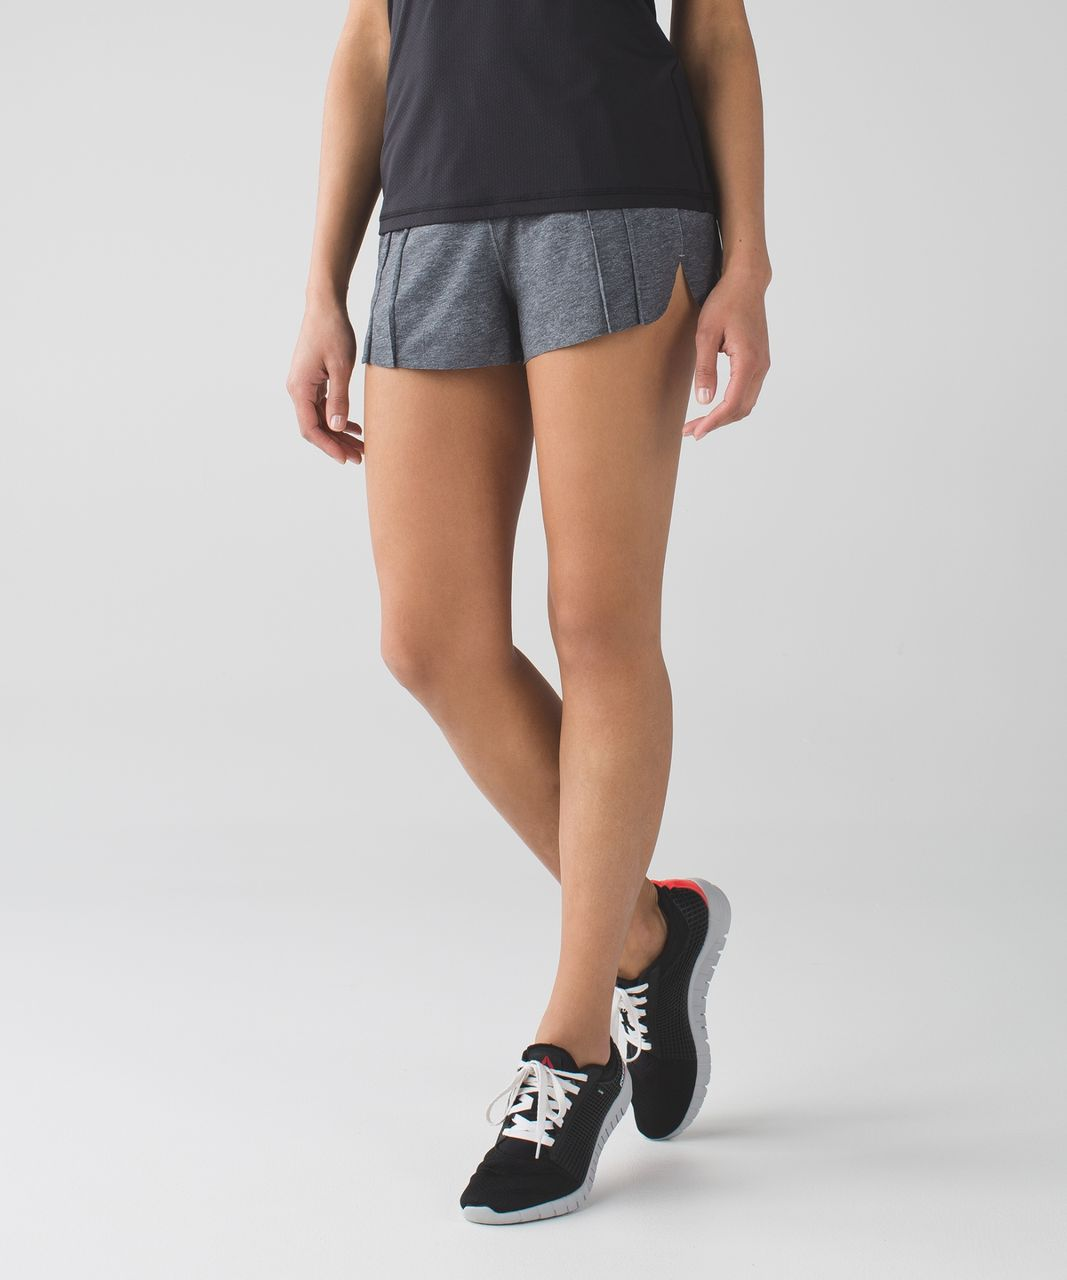 Lululemon &go Endeavor Short - Heathered Texture Printed Greyt Deep Coal